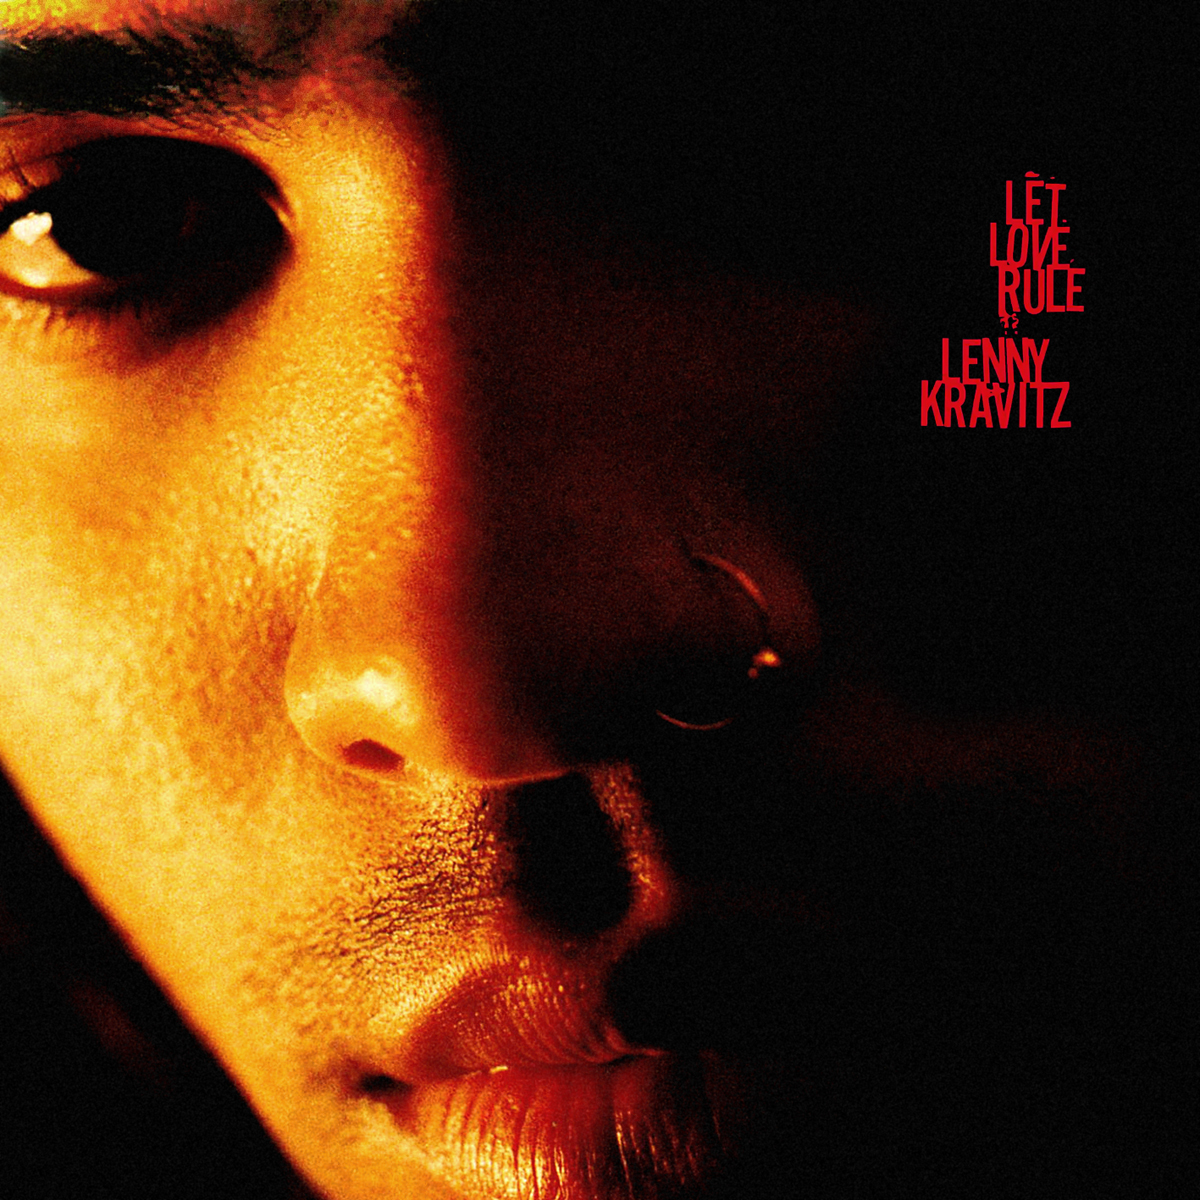 Album Artist: Lenny Kravitz / Album Title: Let Love Rule